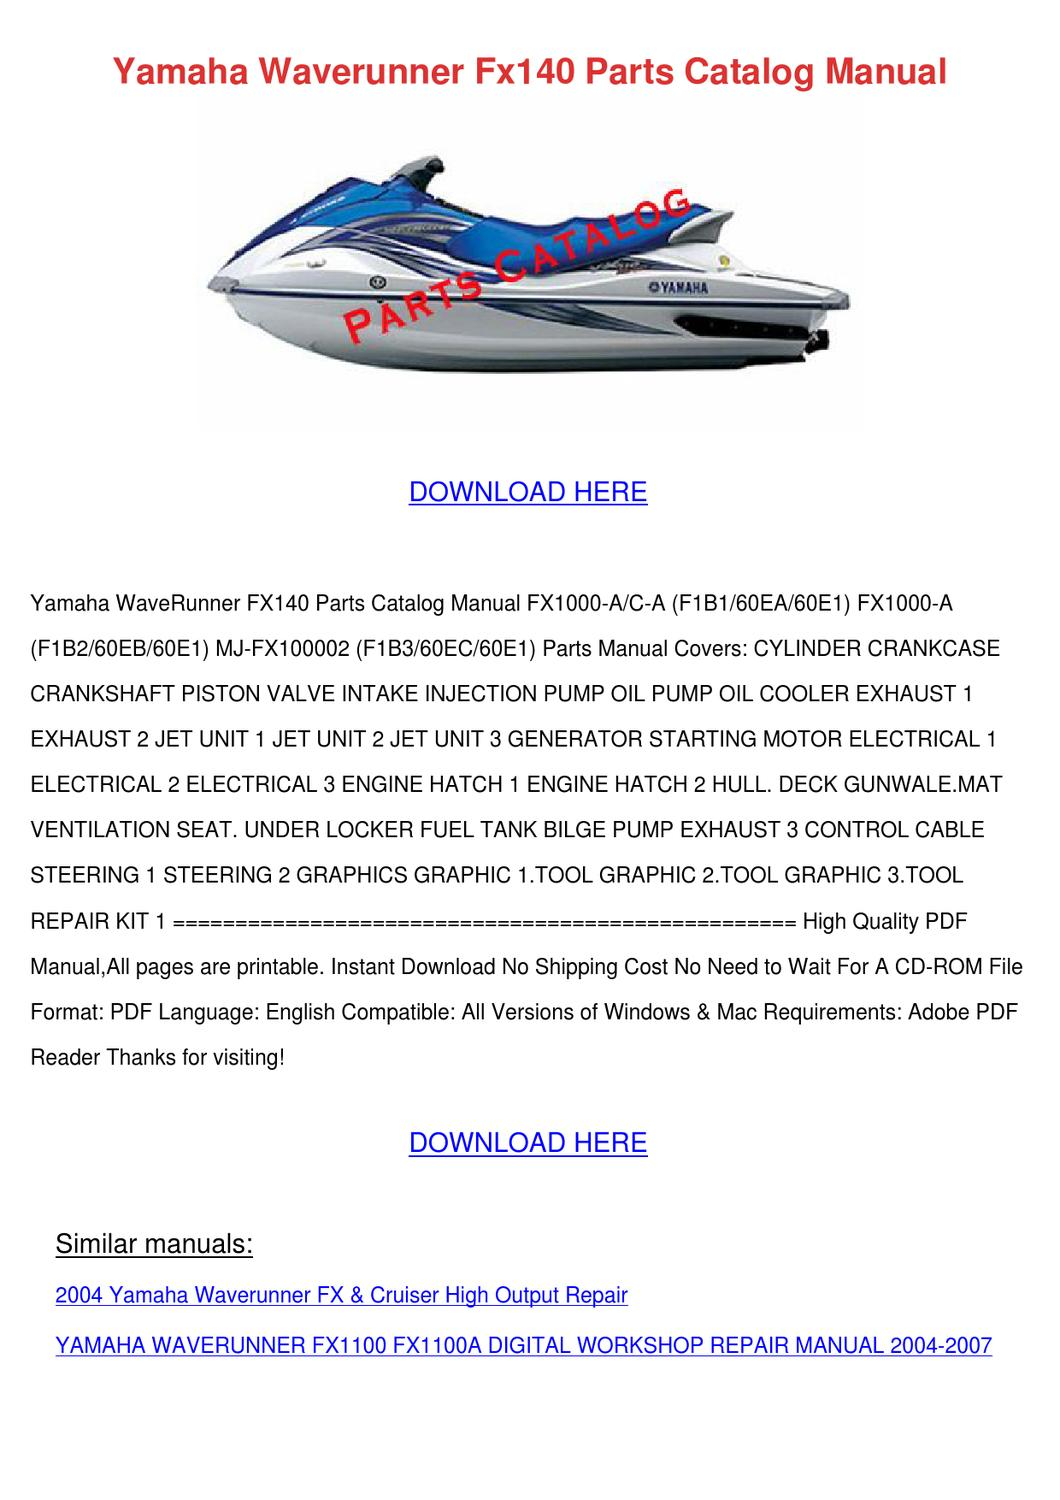 Yamaha Waverunner Fx140 Parts Catalog Manual by